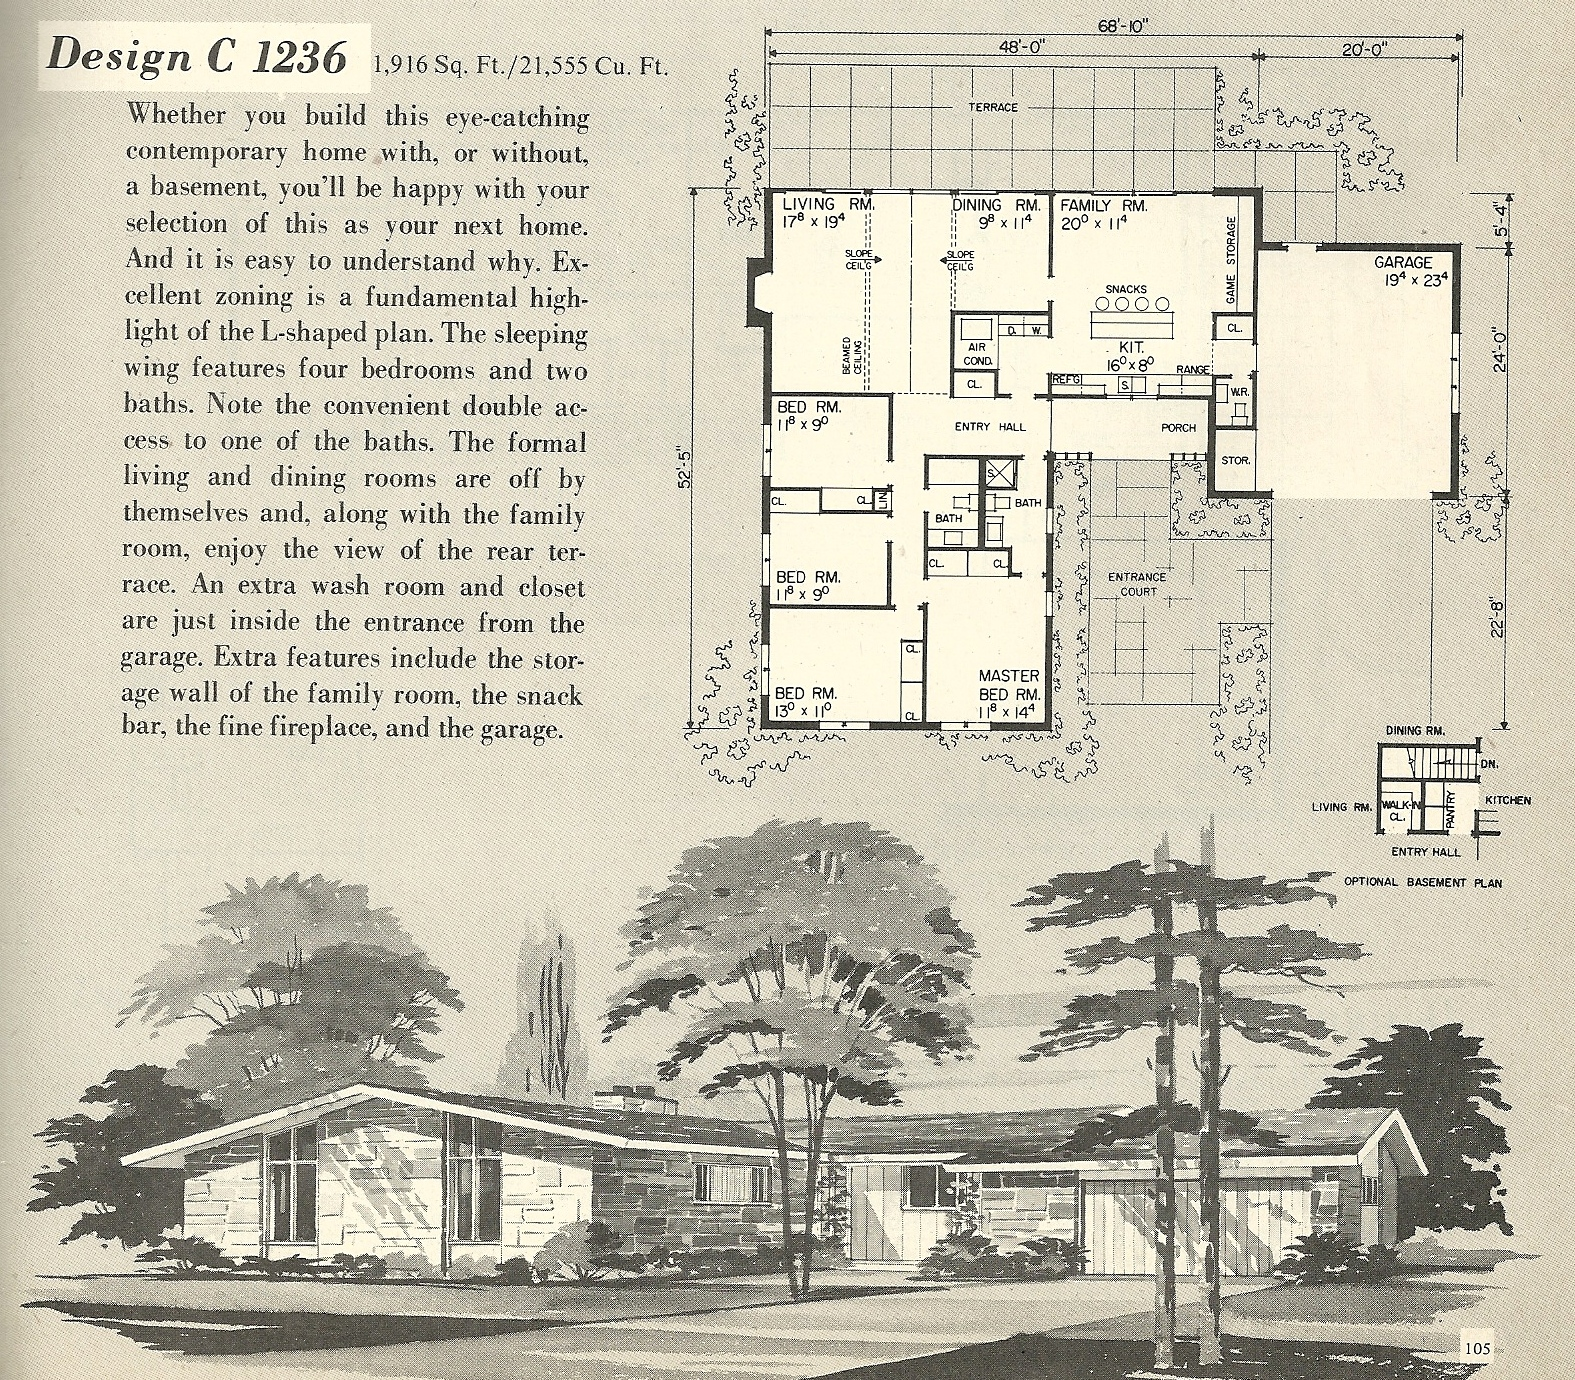 Vintage house plans 1236 antique alter ego - Retro home design ...